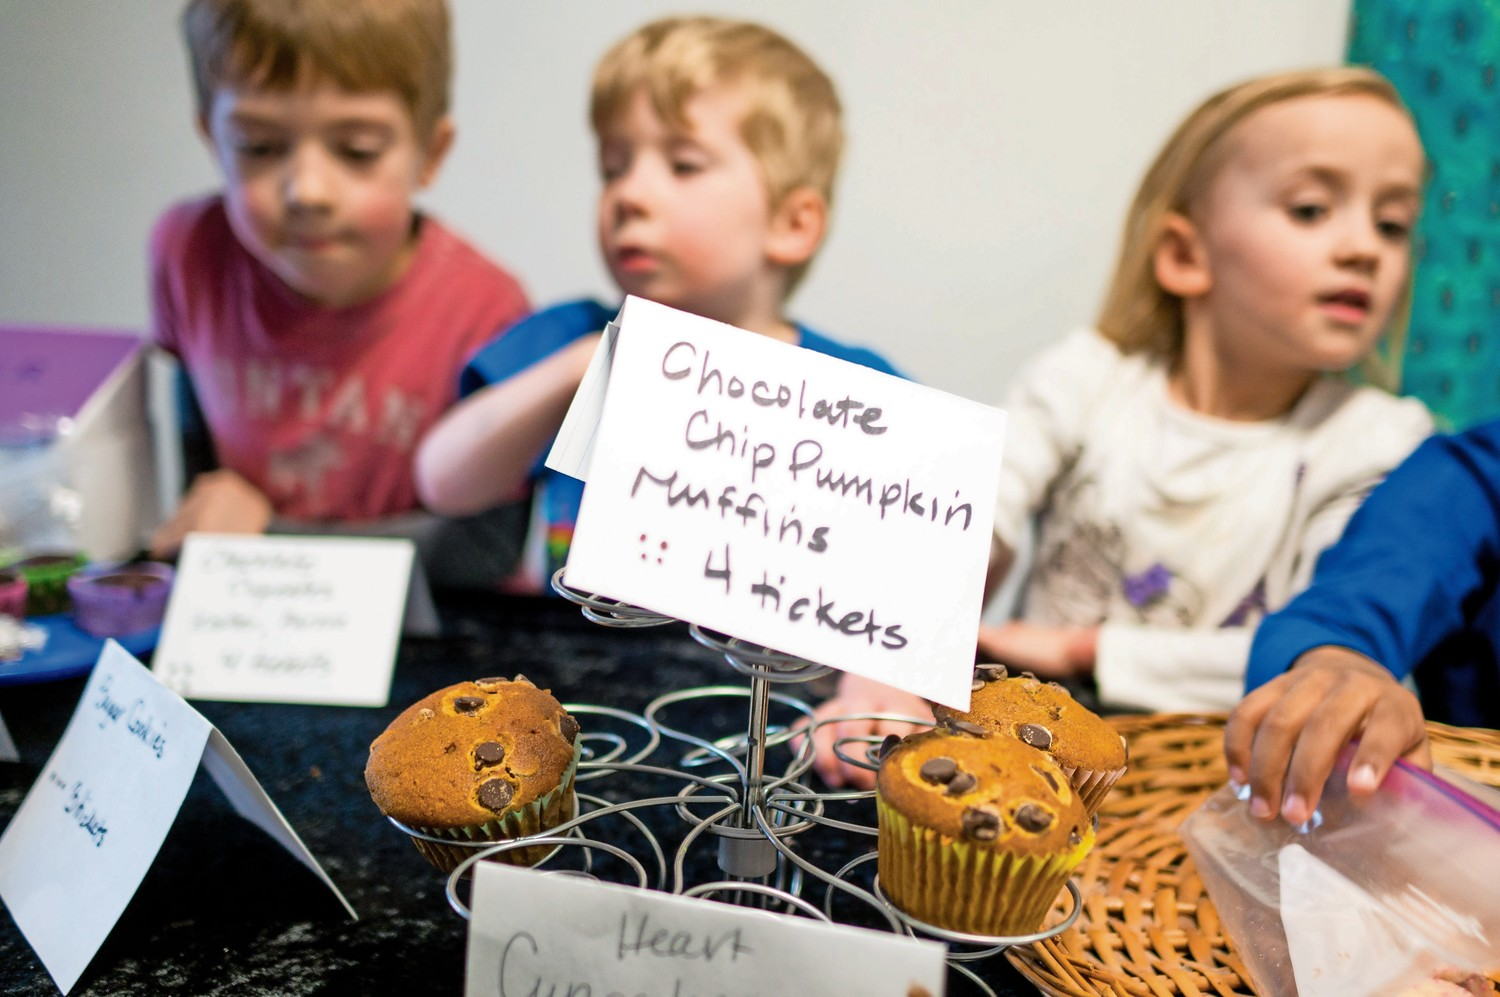 Chocolate chip pumpkin muffins were popular at the bake sale at Riverdale Nursery School and Family Center. Students succeeded in raising $1,200, which they donated to Mosaic Mental Health.